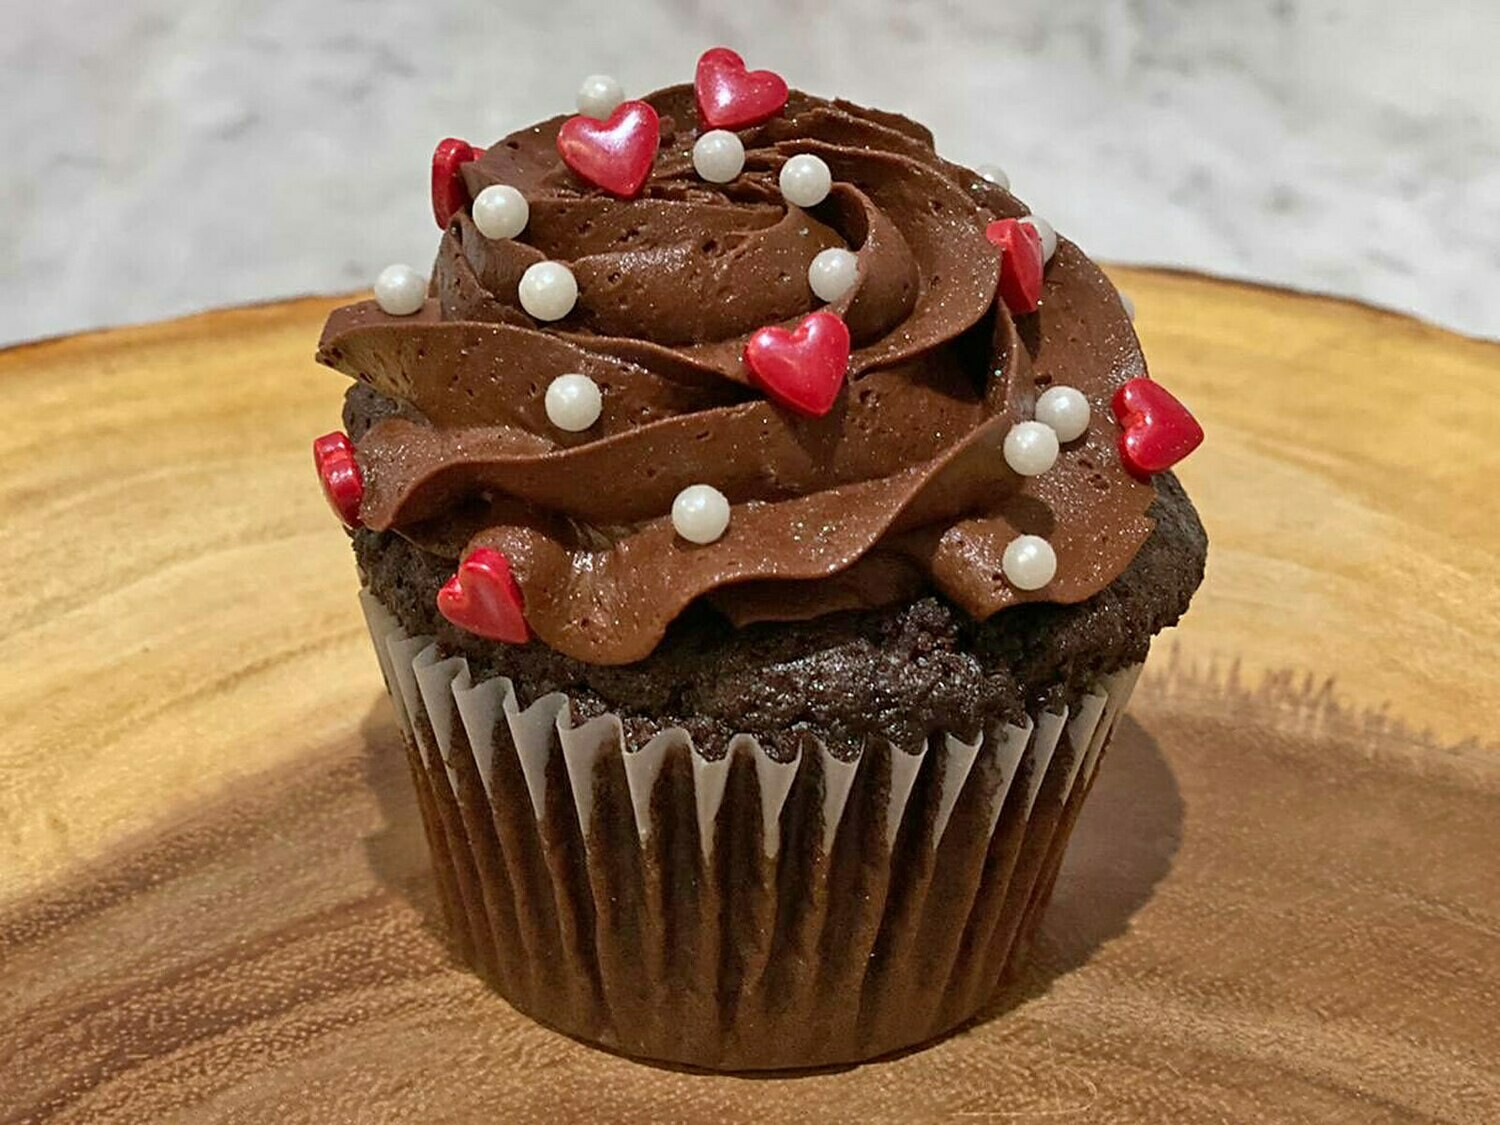 PRE-ORDER Valentine's Day Chocolate Cupcake for 2/13 or 2/14